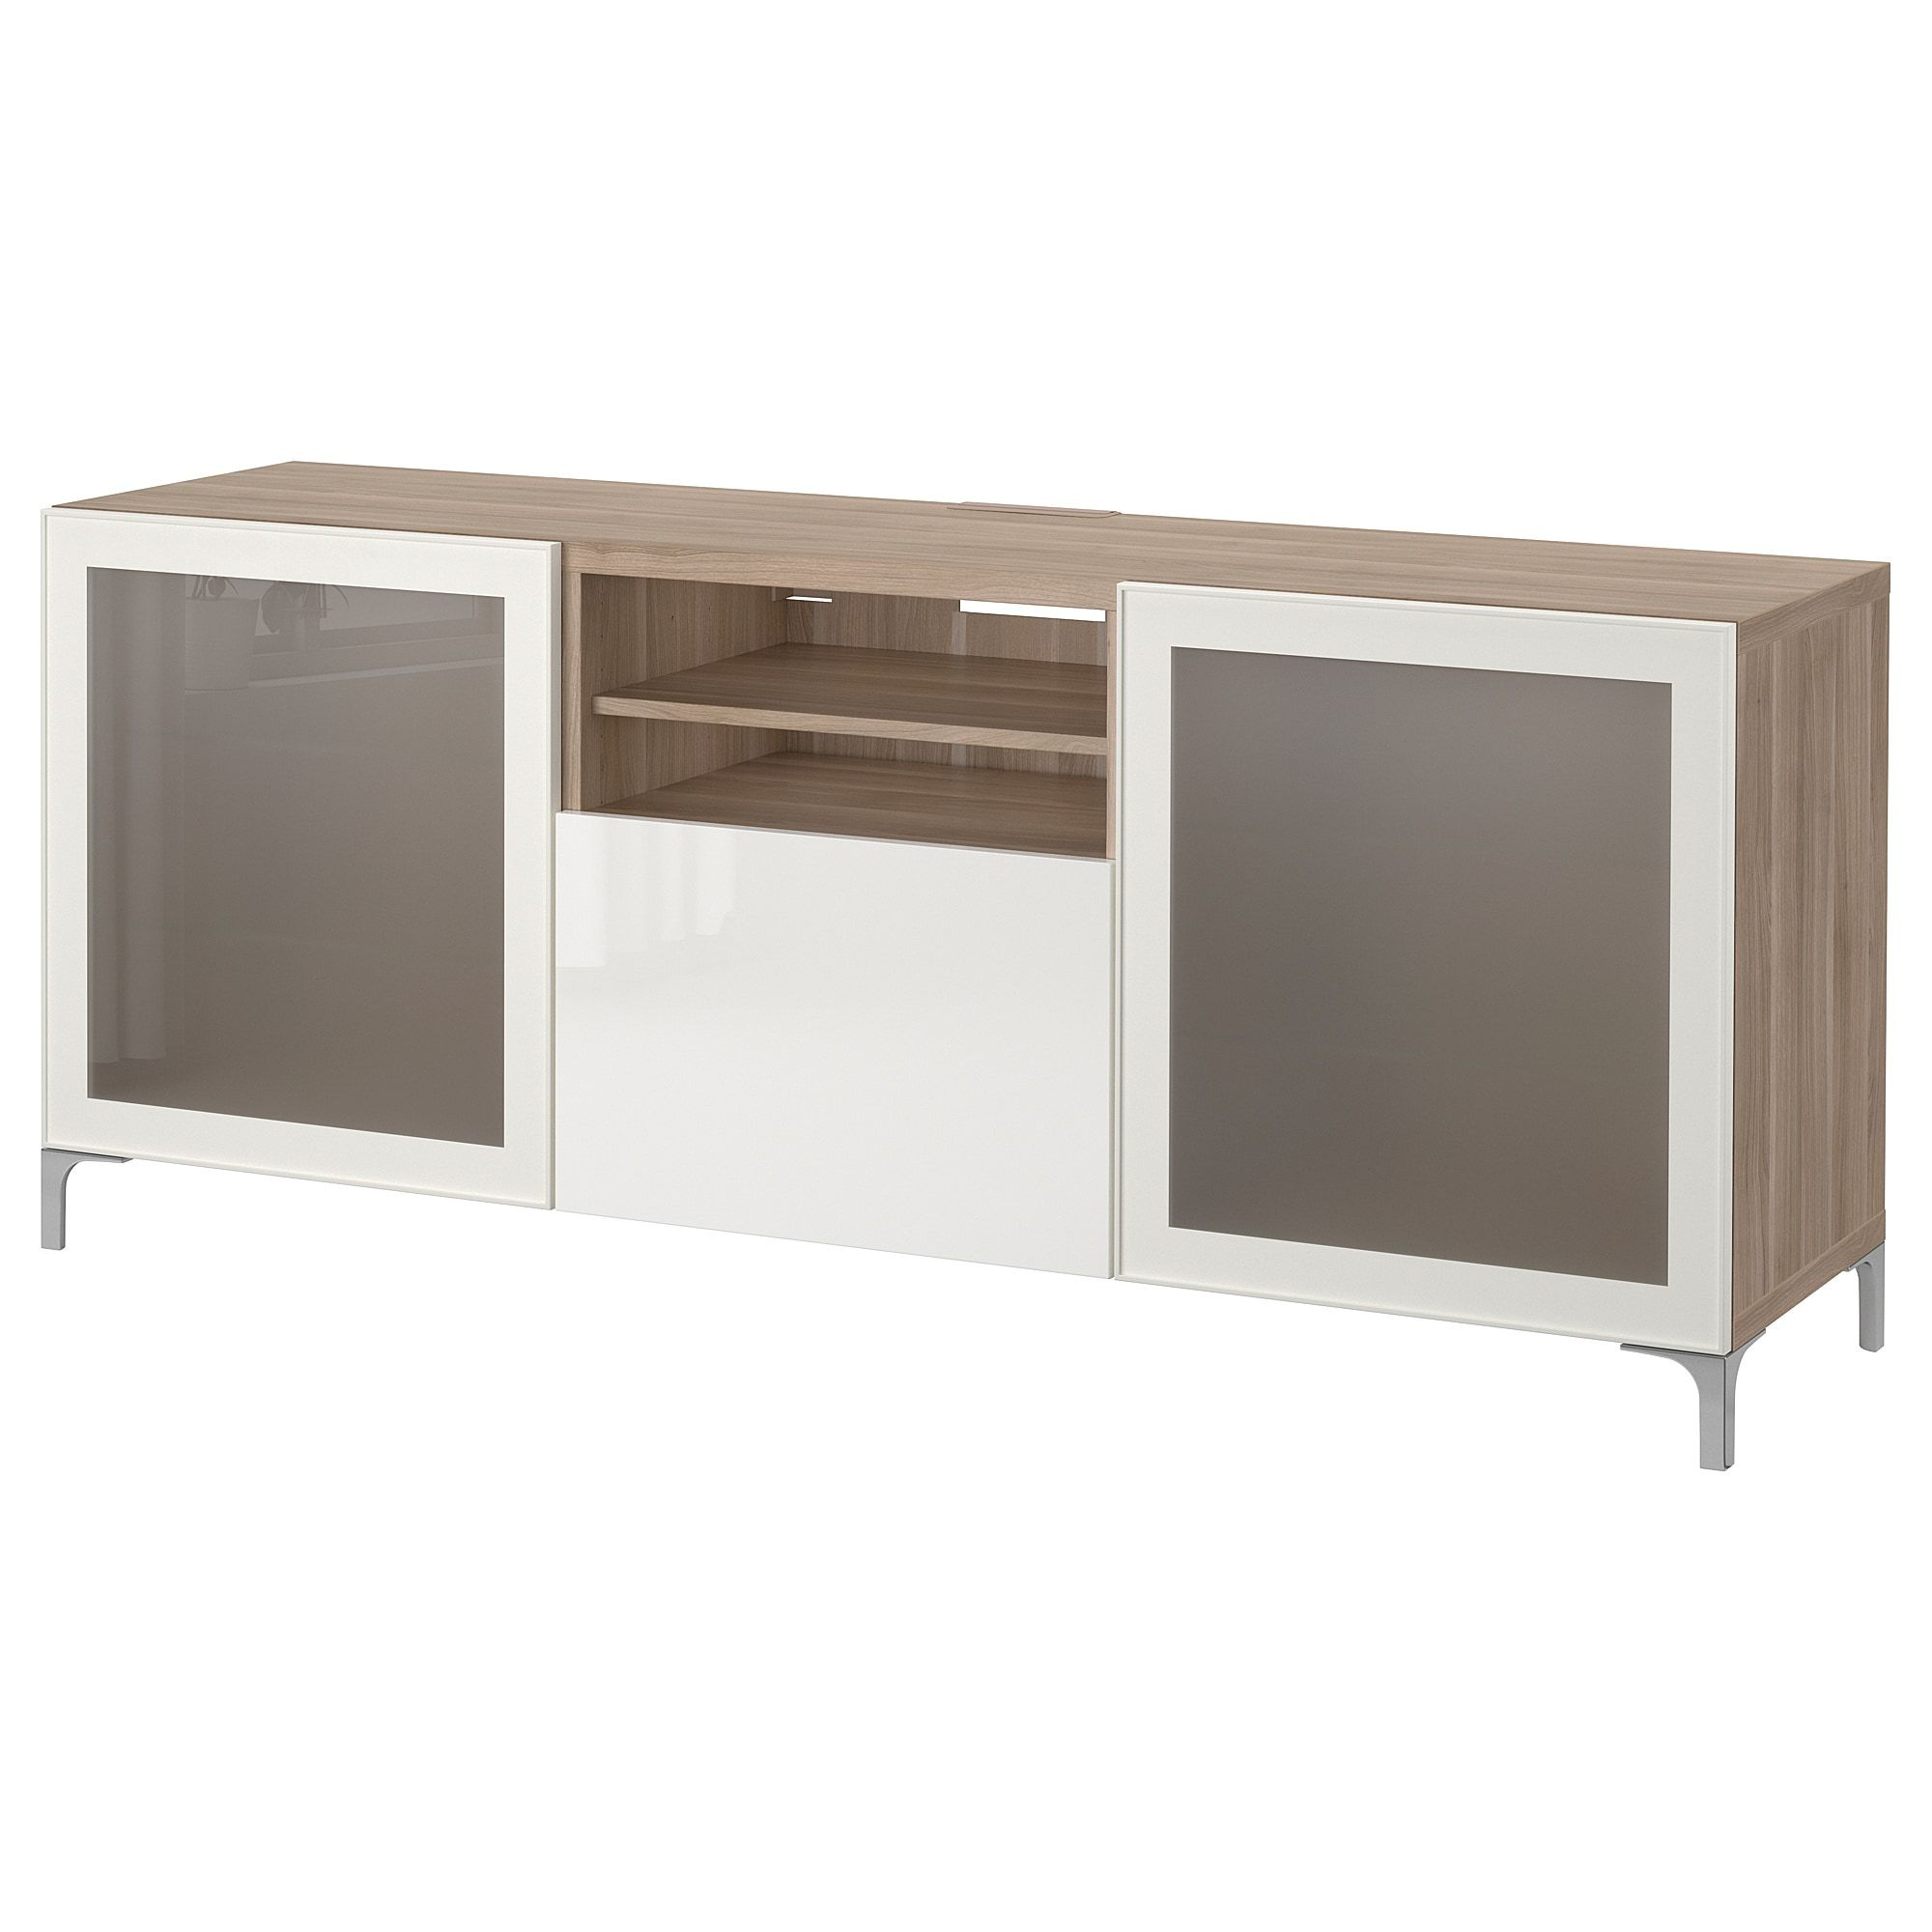 Besta Tv Unit With Drawers Walnut Effect Light Gray Selsviken High Gloss White Frosted Glass 70 7 8x15 3 4x29 1 8 Buy Online Or In Store Ikea Tv Bench Bench With Drawers Ikea